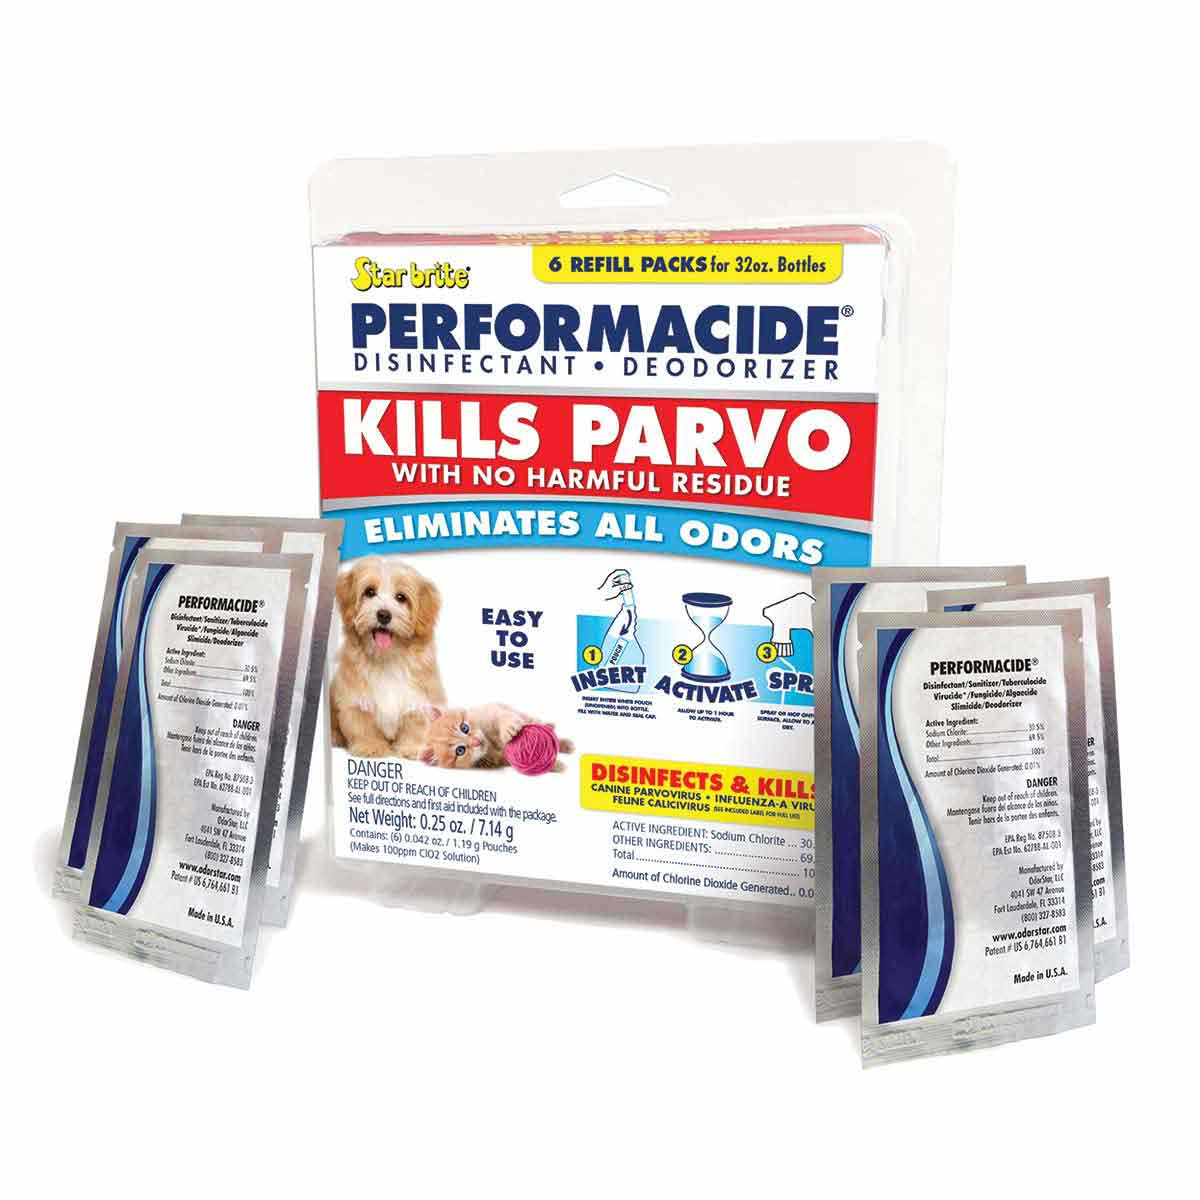 Star brite Performacide Disinfectant and Deodorizer Kills Parvo 32 oz Refill 6-Pack